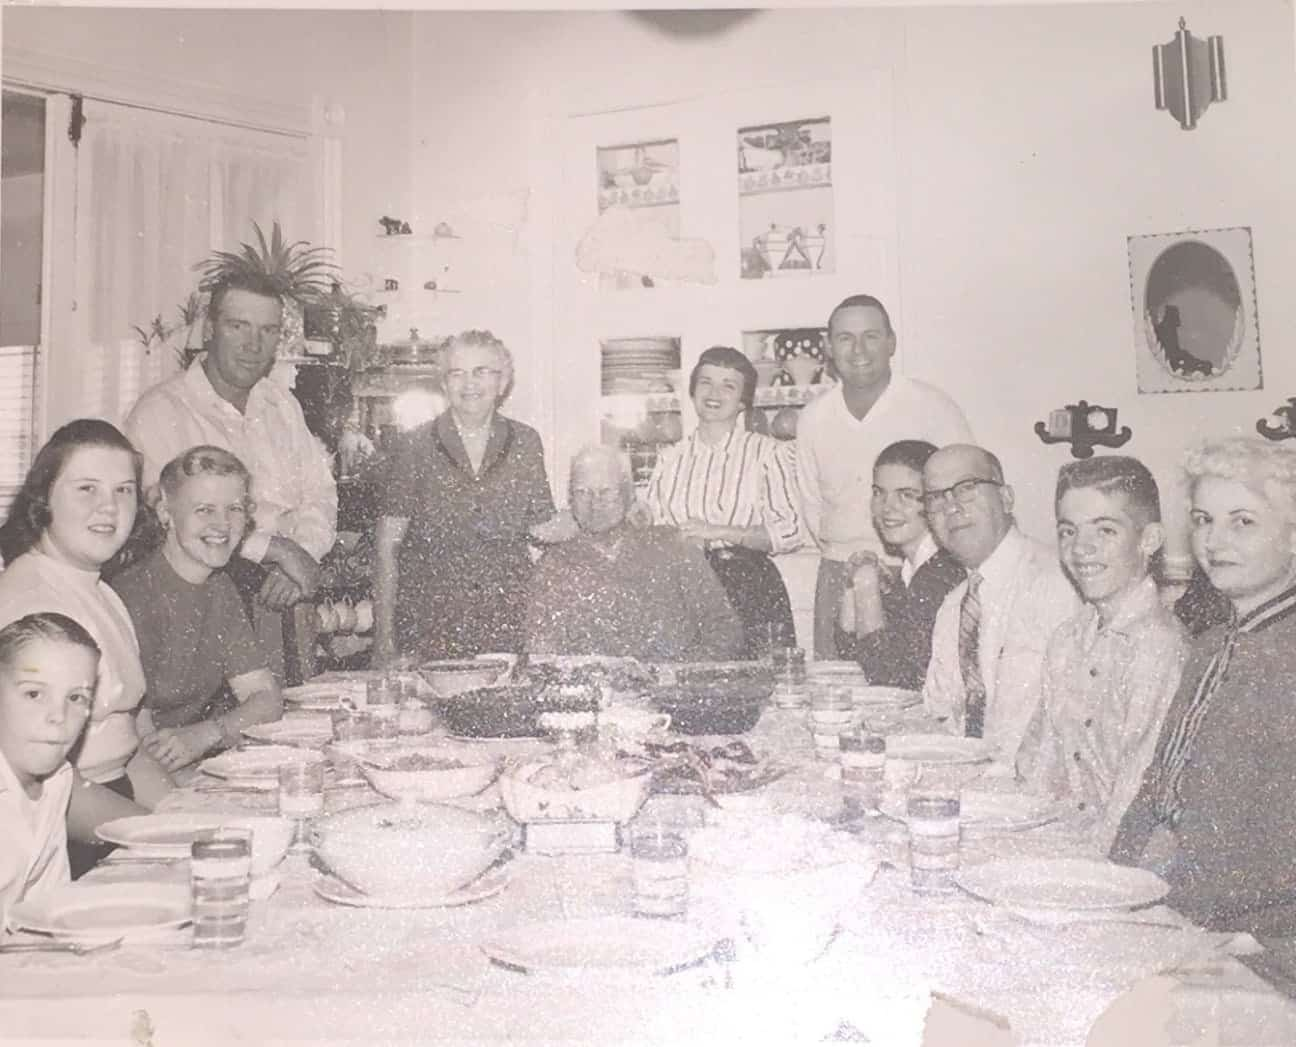 A gravy boat, left, sits between the author's parents. The author, Richard, is seated far left.